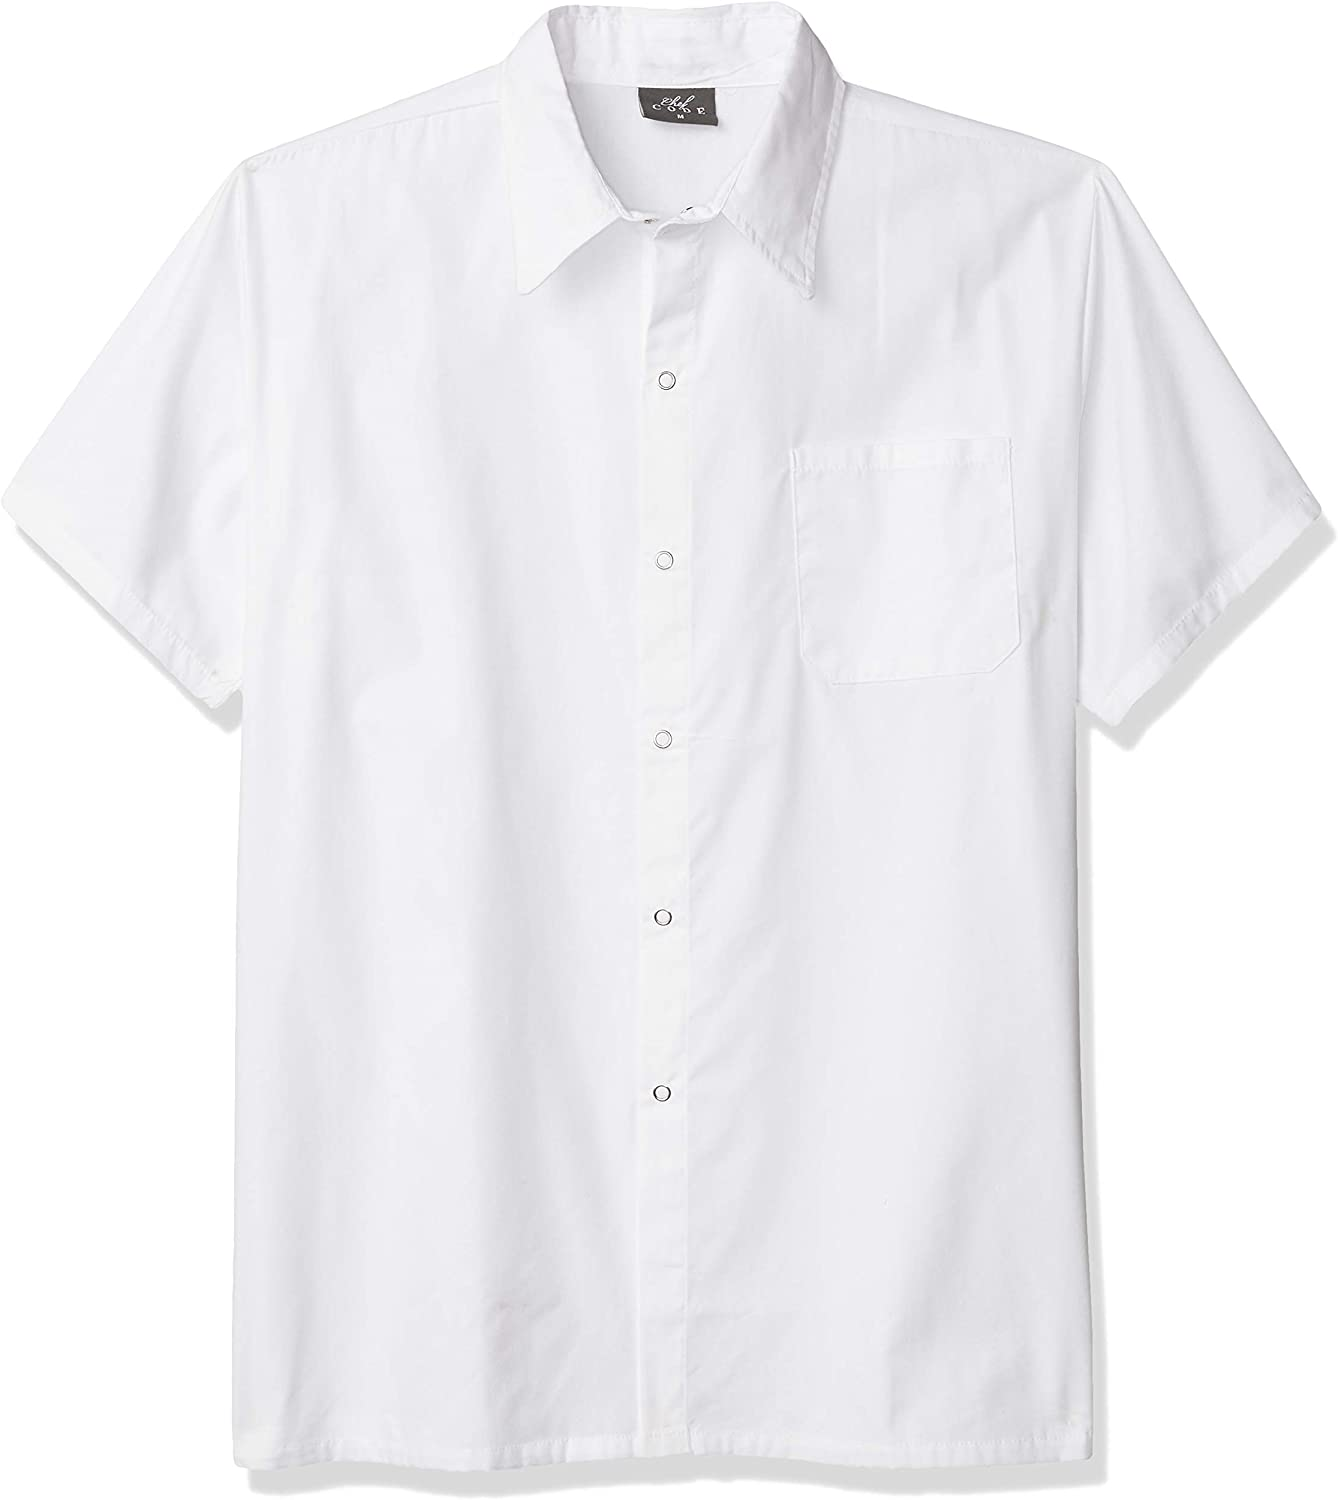 Top 10 Video Toaster Shirt White